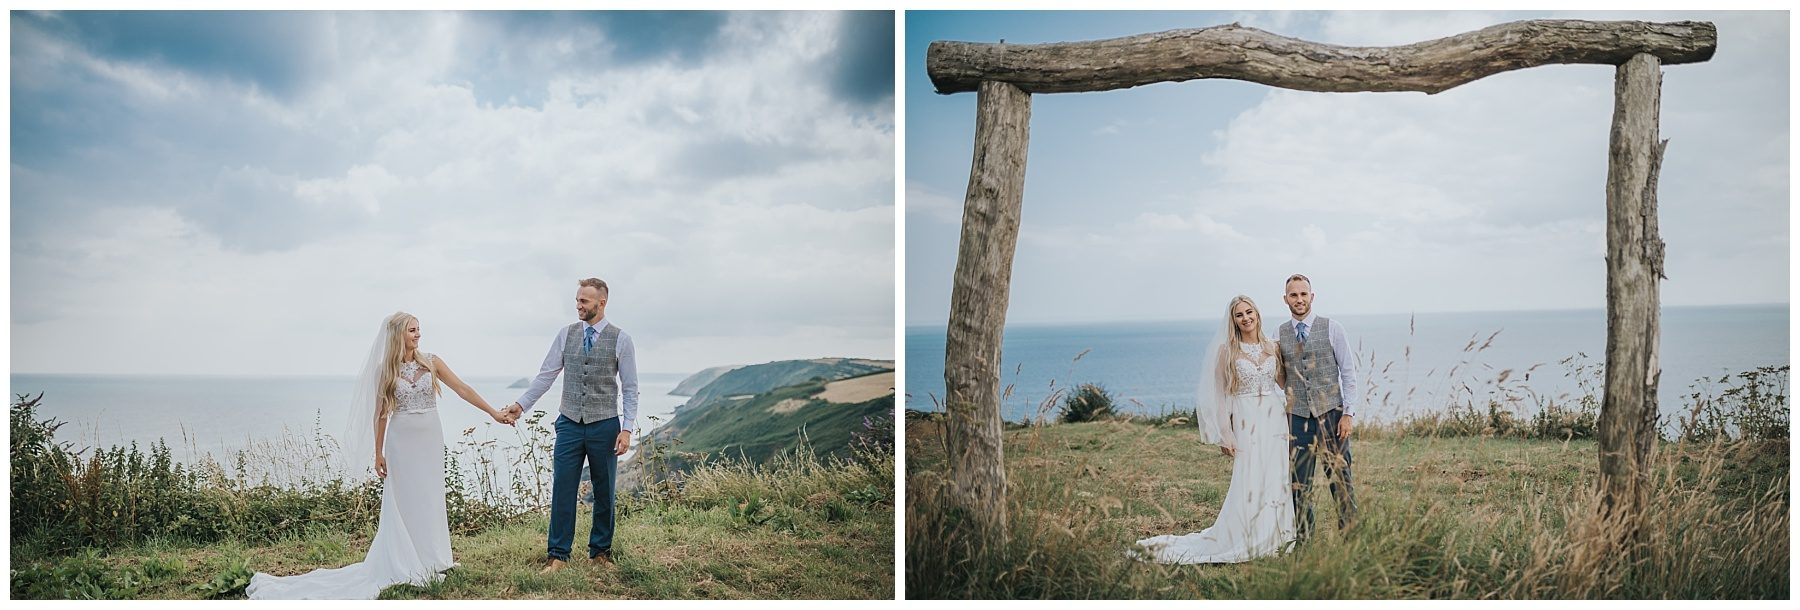 Cornwall wedding photography couple shots